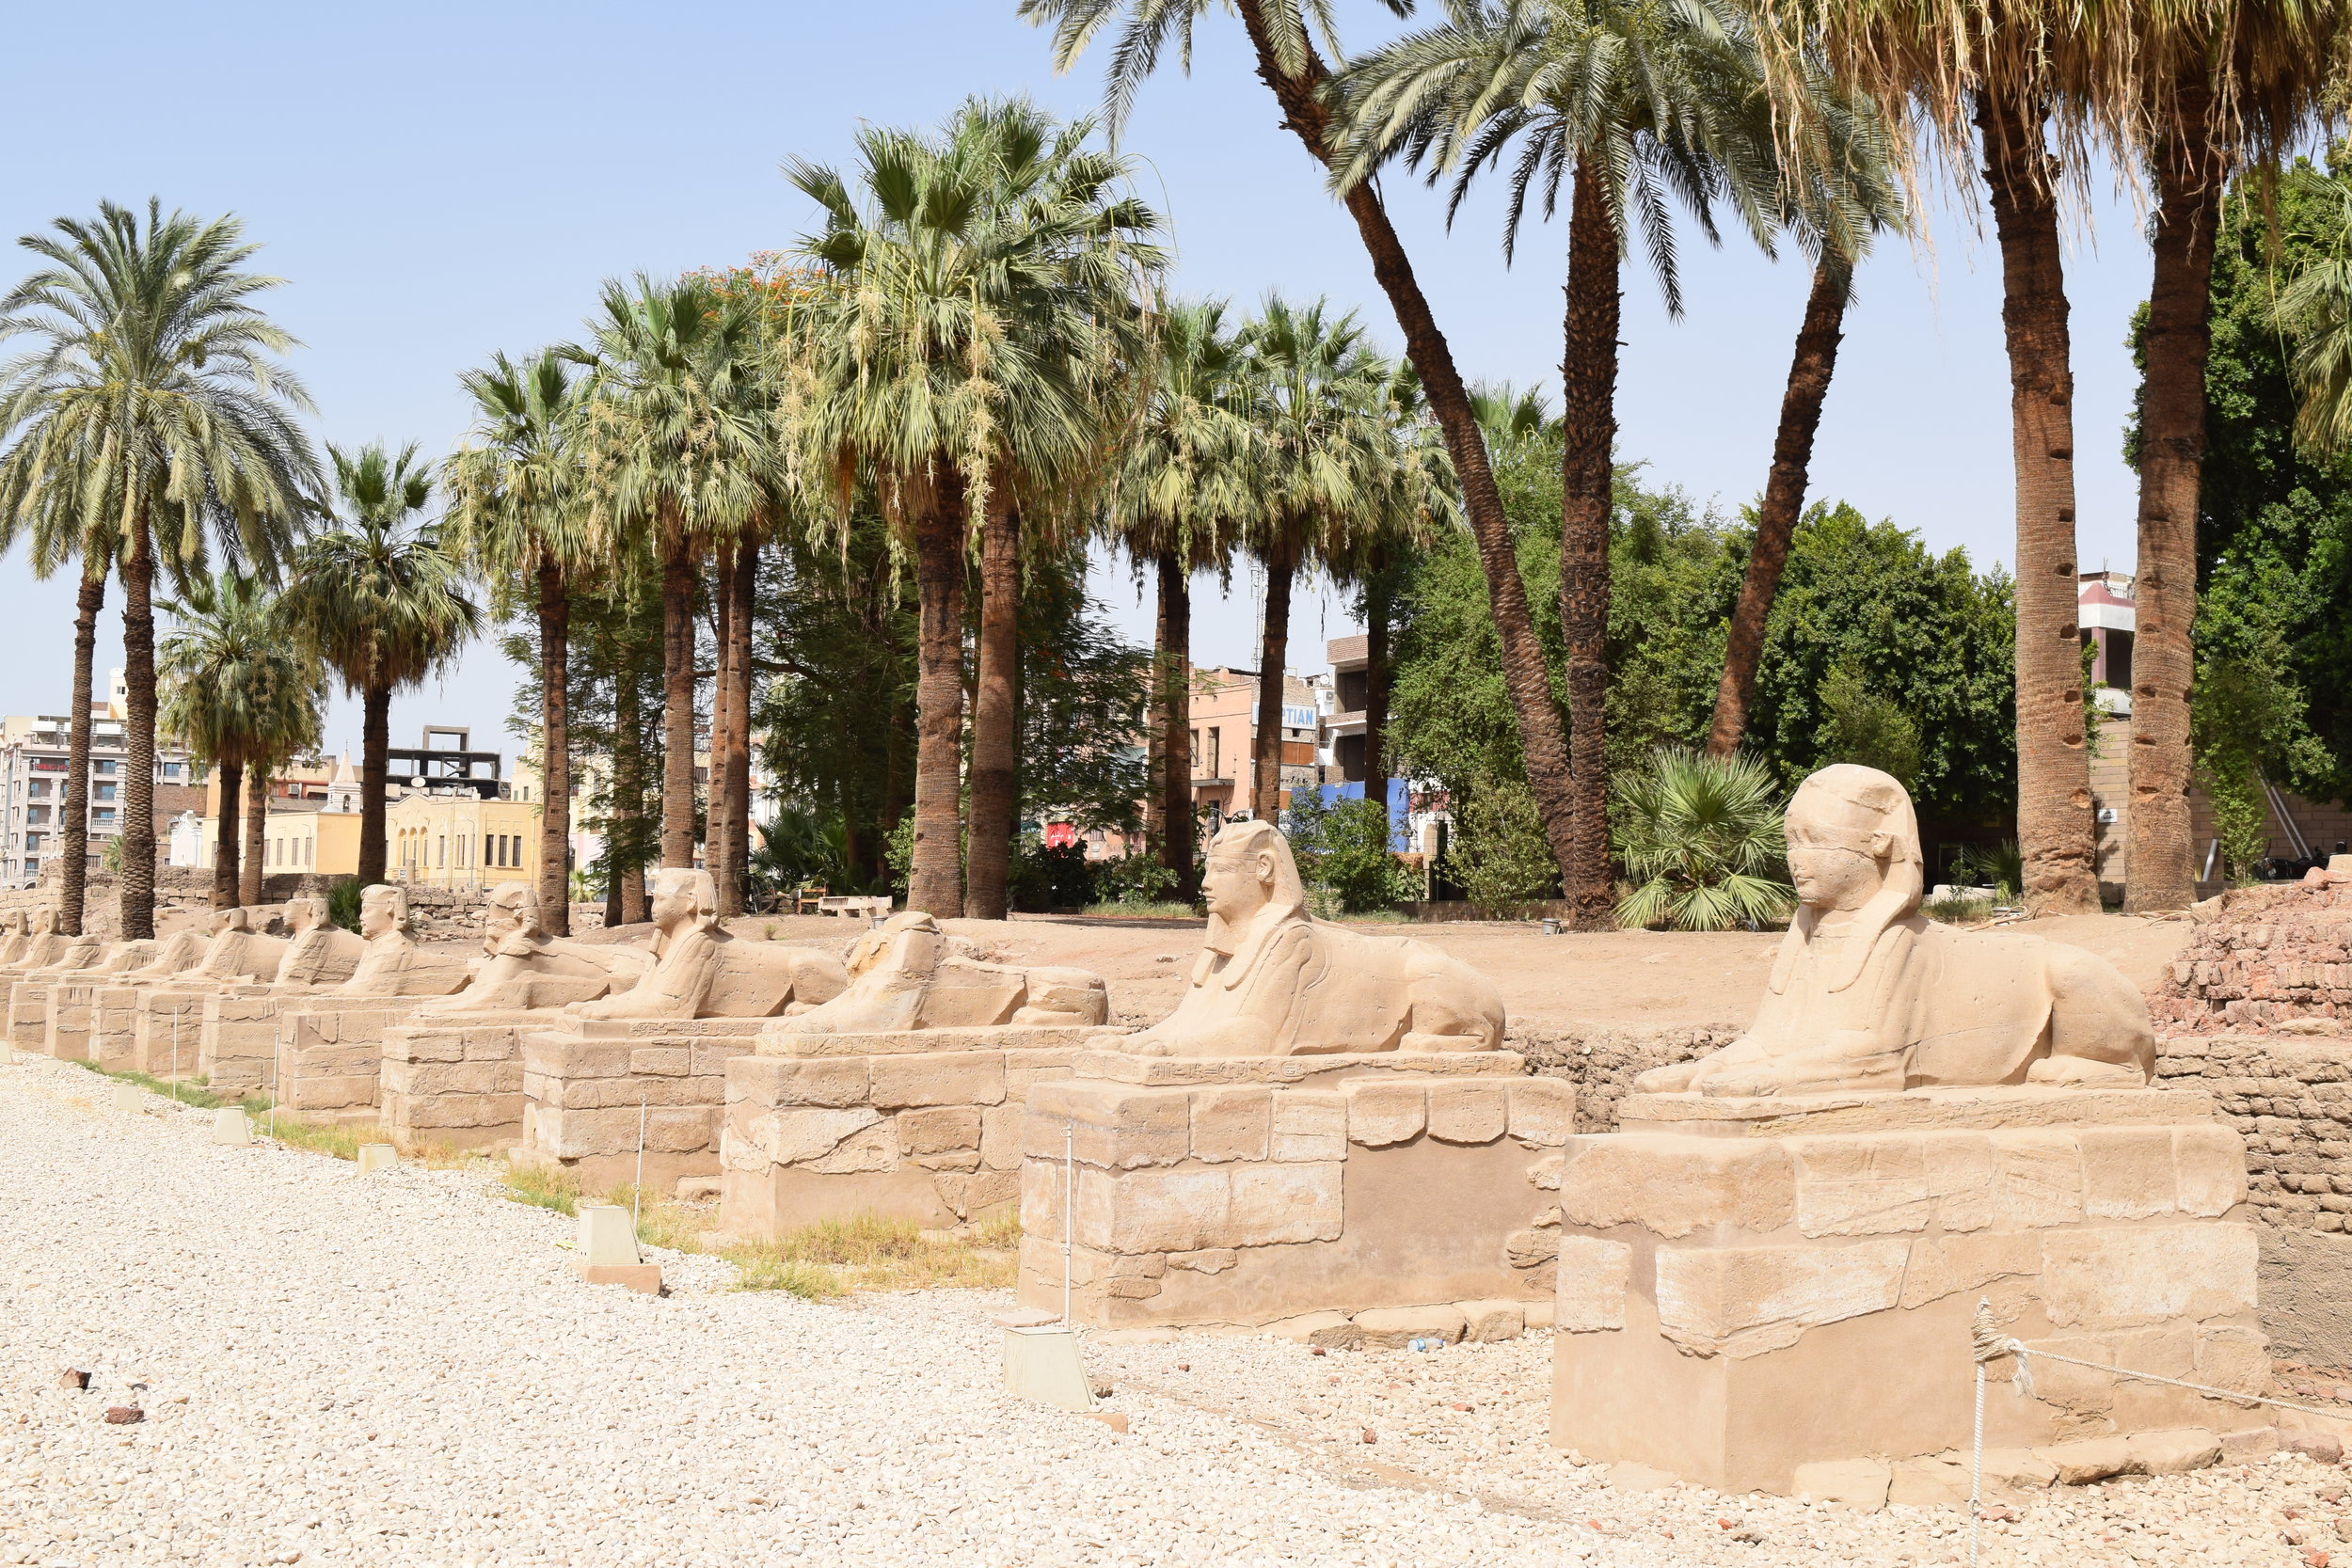 Closer view of the sphinxes